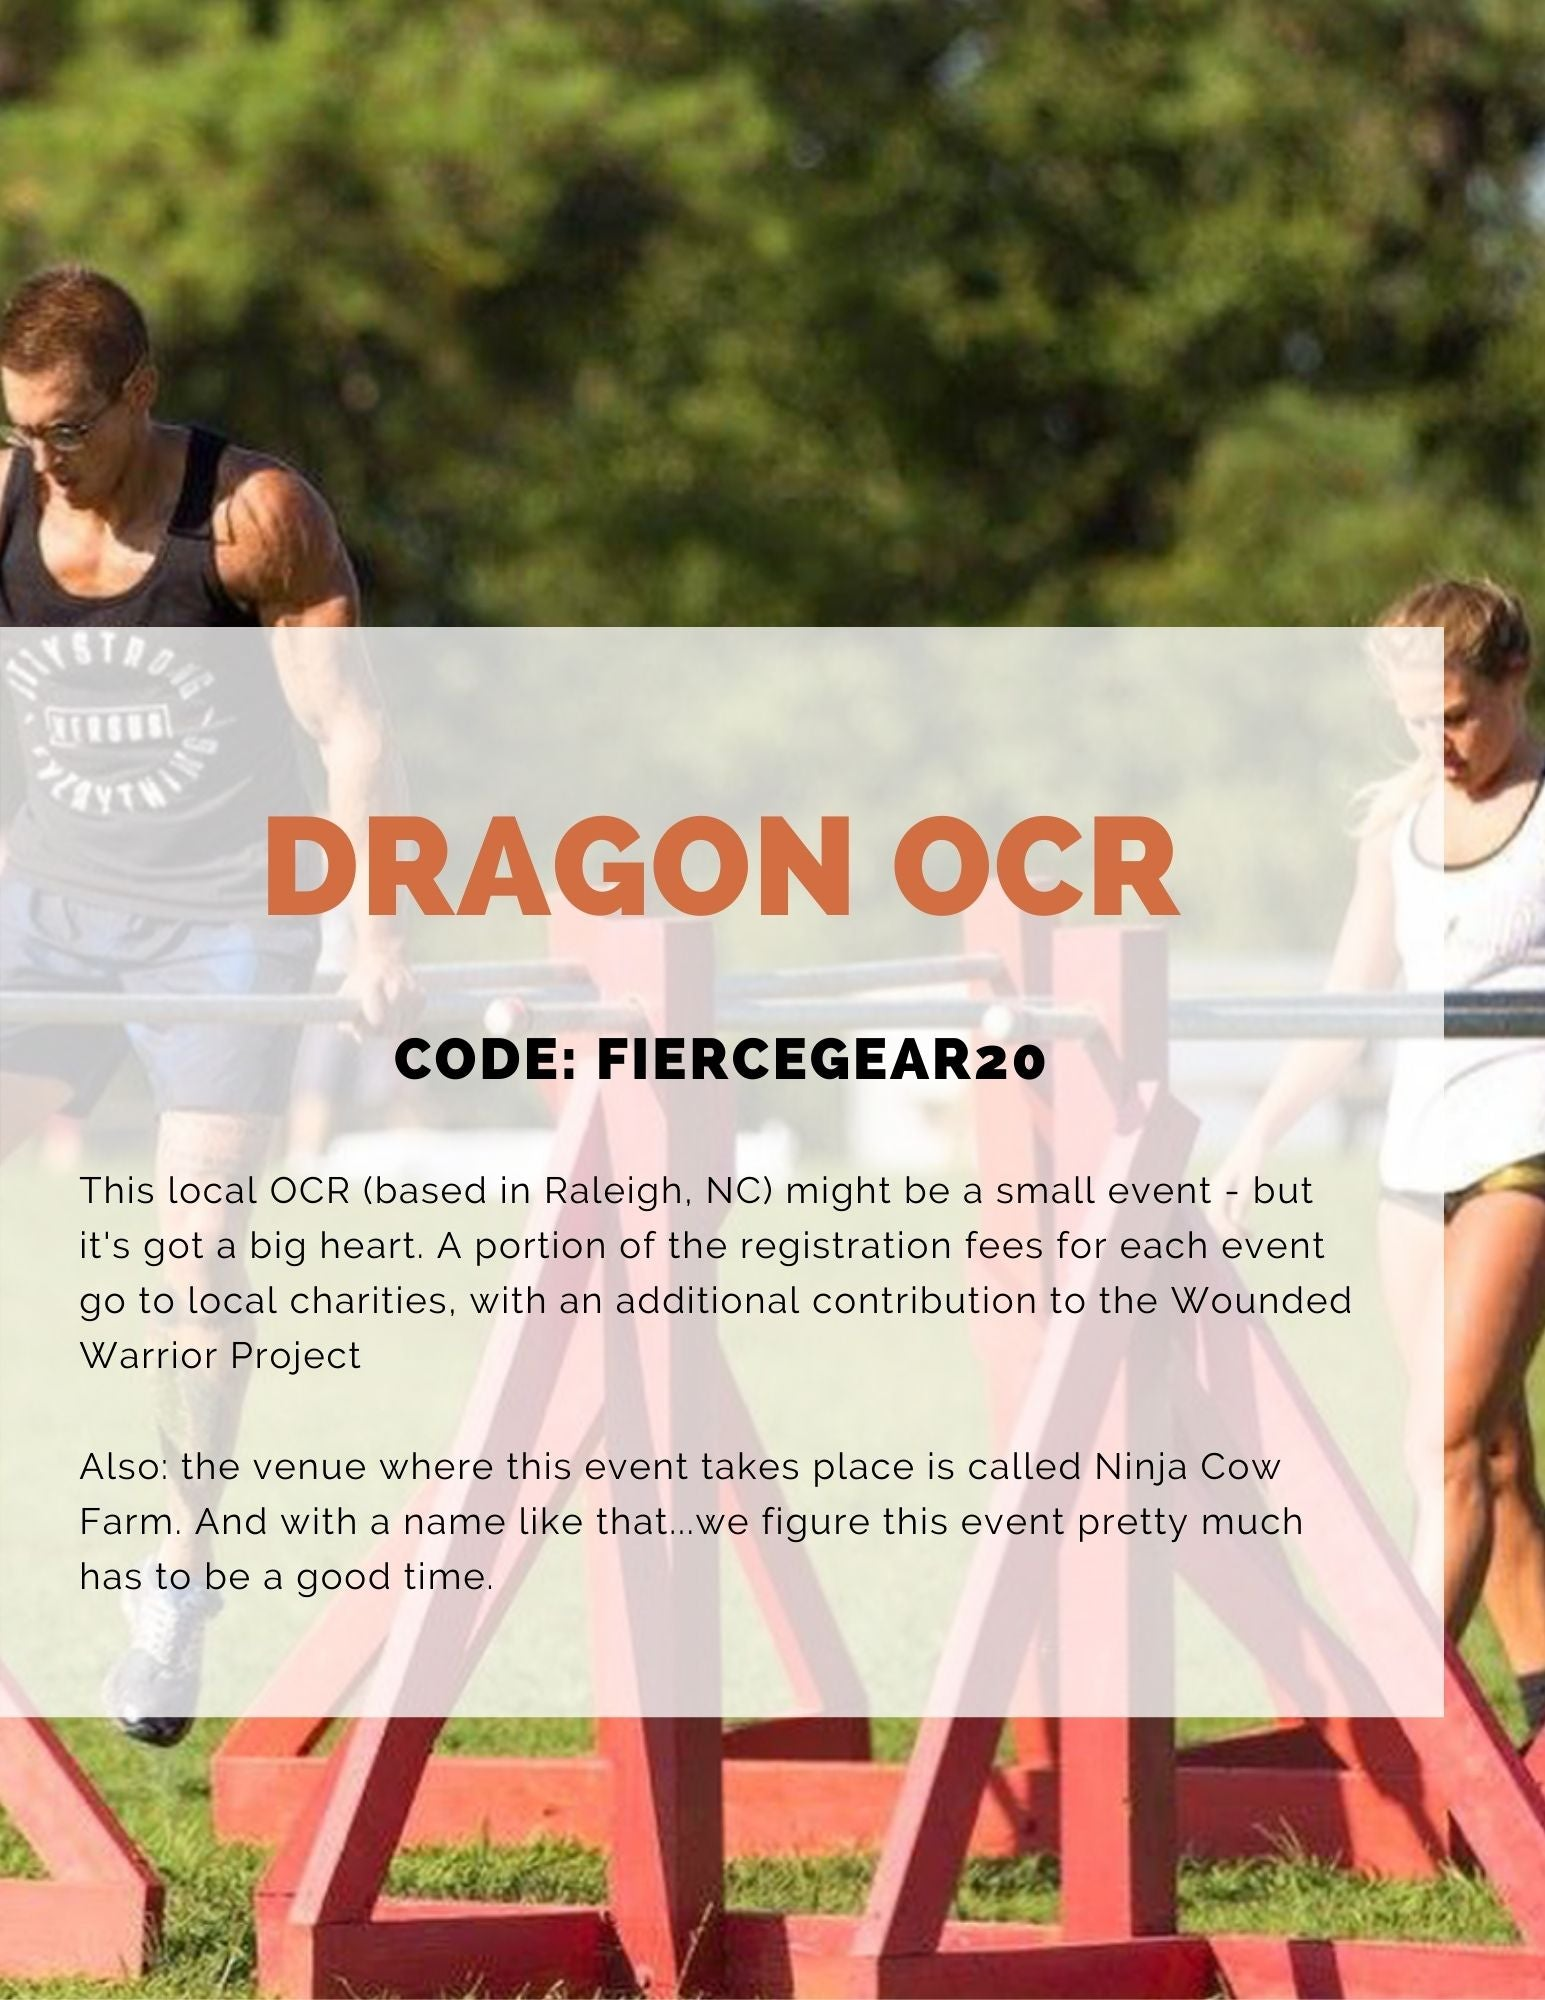 Dragon OCR obstacle course race in Raleigh, NC